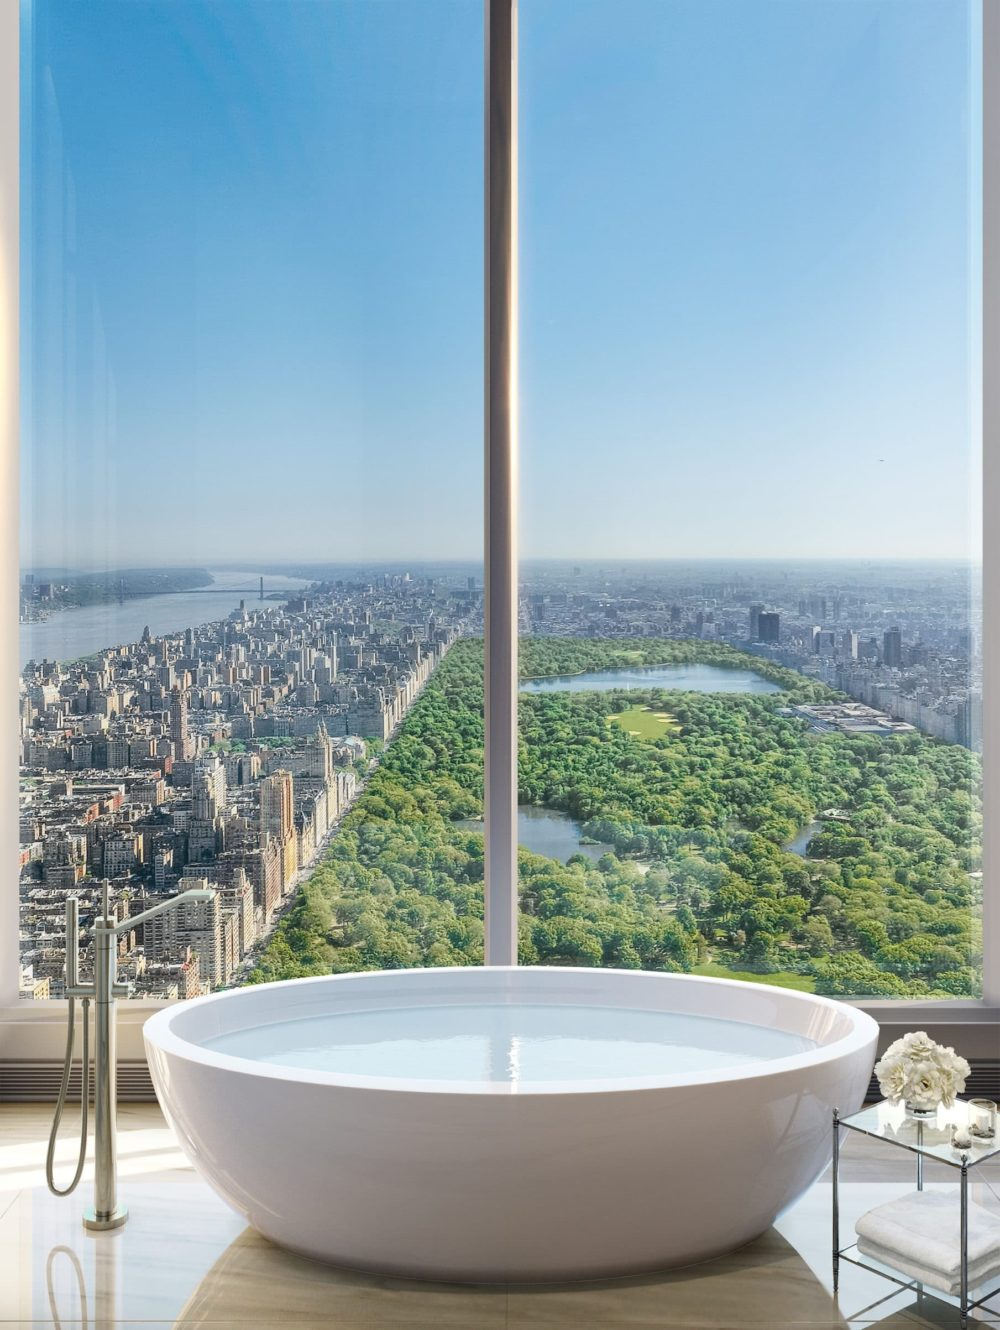 Interior view of Central Park Tower residence bathroom with window view of New York City and Central Park.